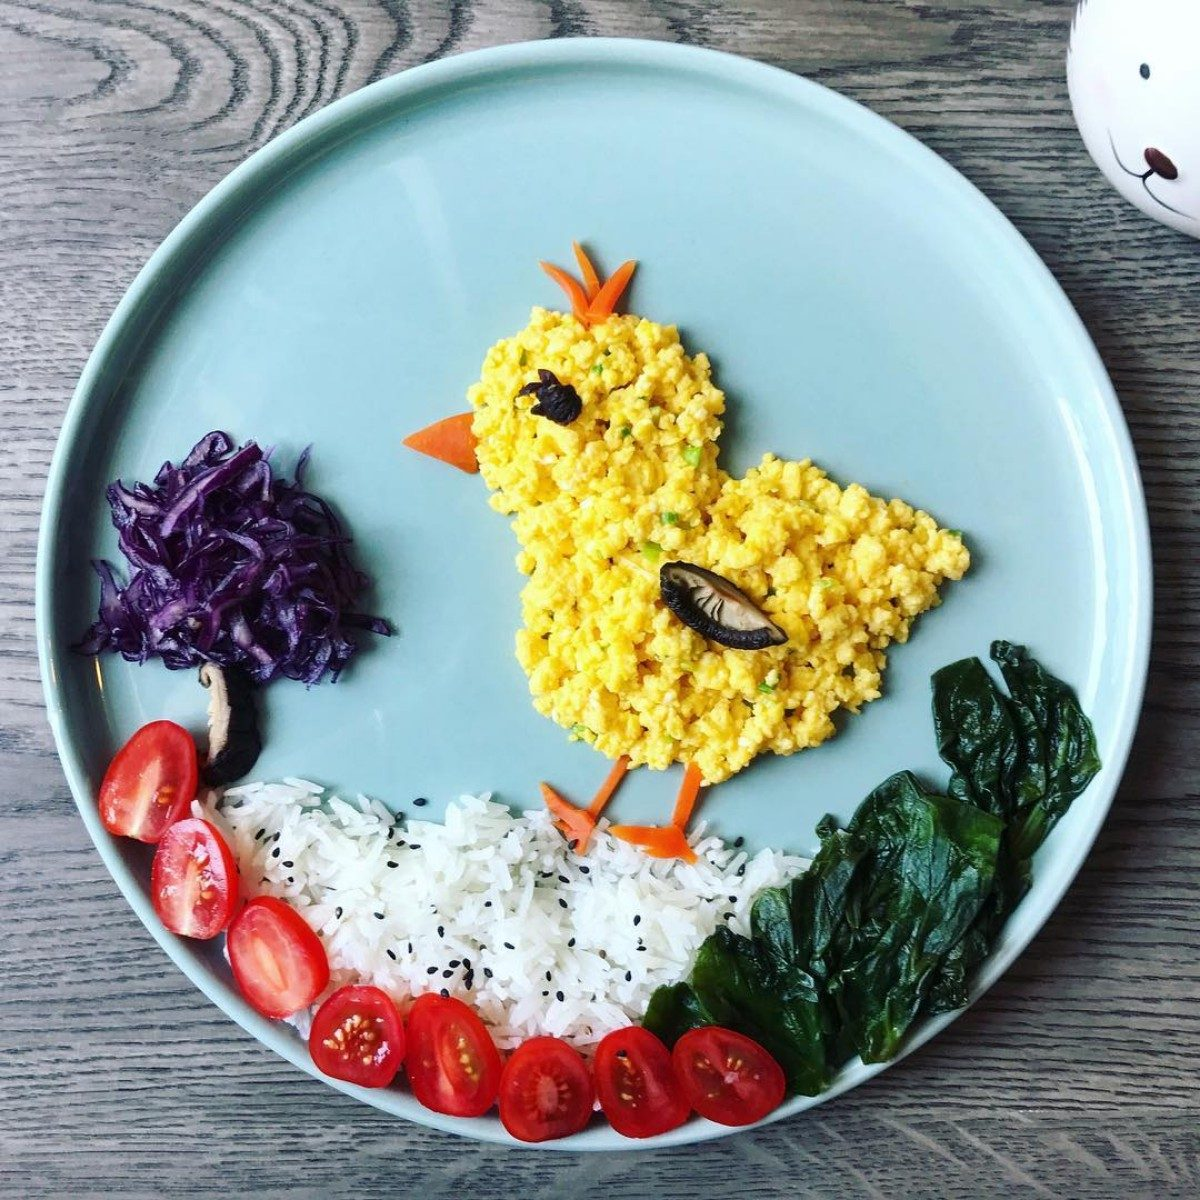 chicken shaped plate of food